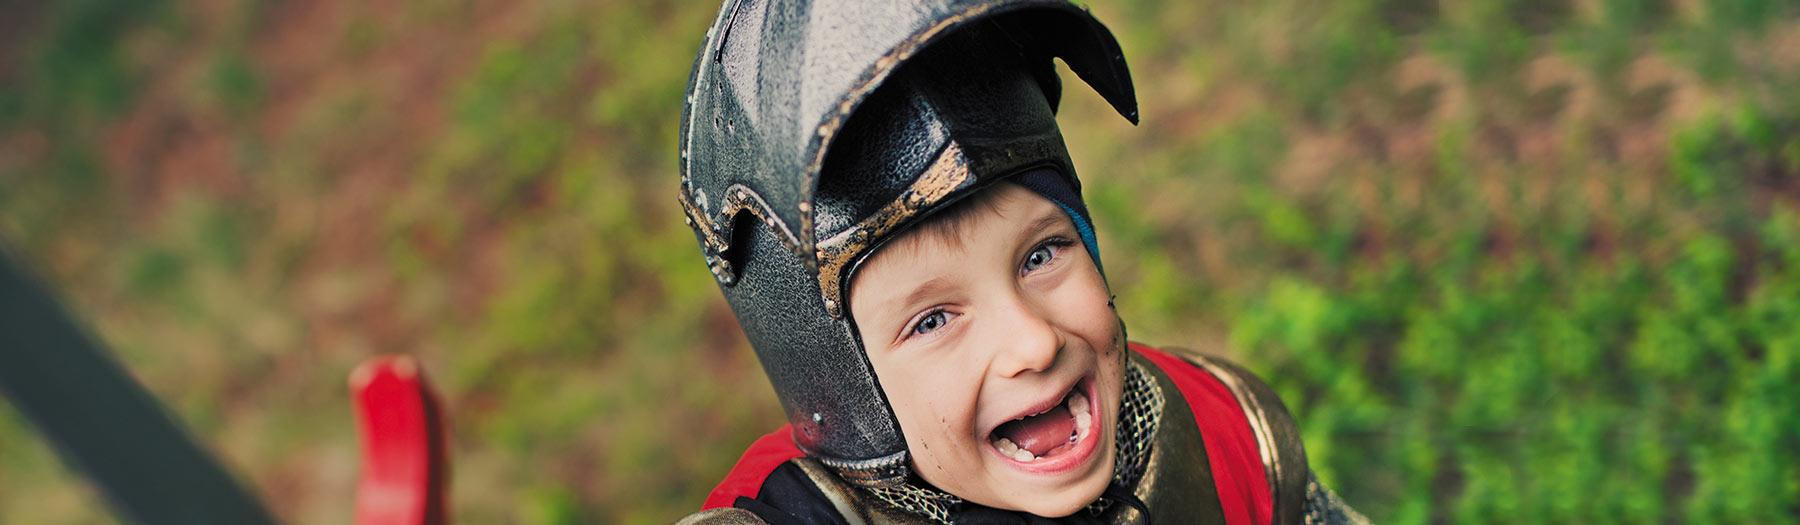 Kids go free image - young boy wearing a Knight's costume